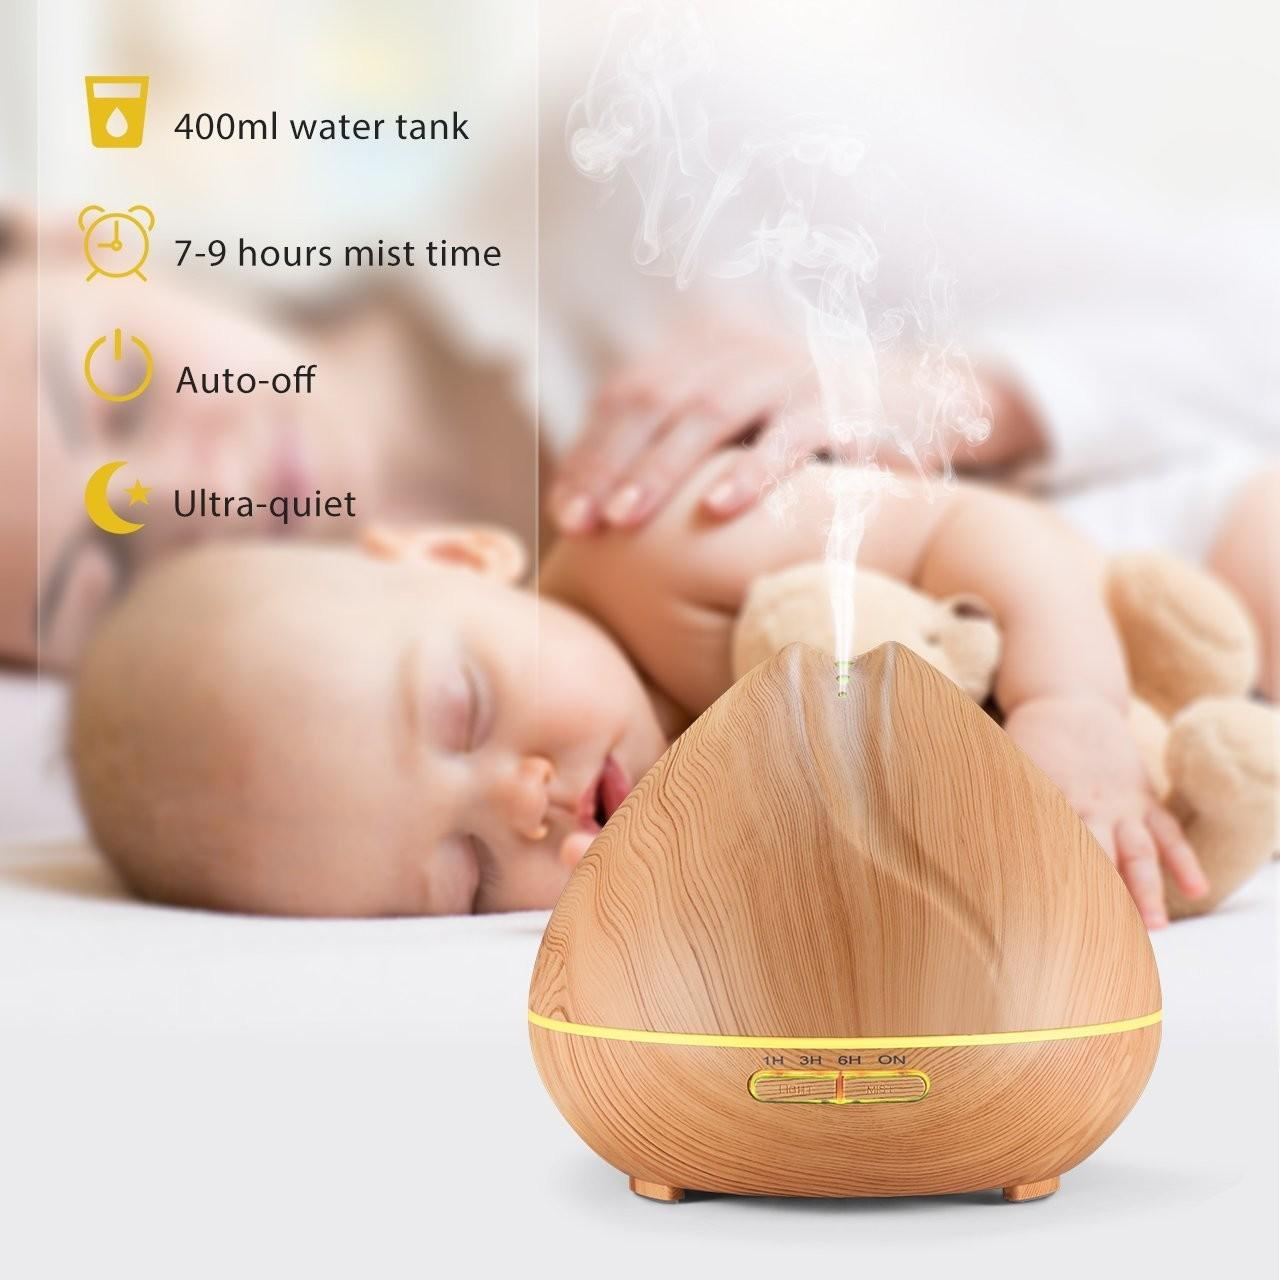 Quality Shark Mouth Design 400ml Ultrasonic Essential Oil Diffuser Wooden Ultrasonic Aromatherapy Diffuser for sale